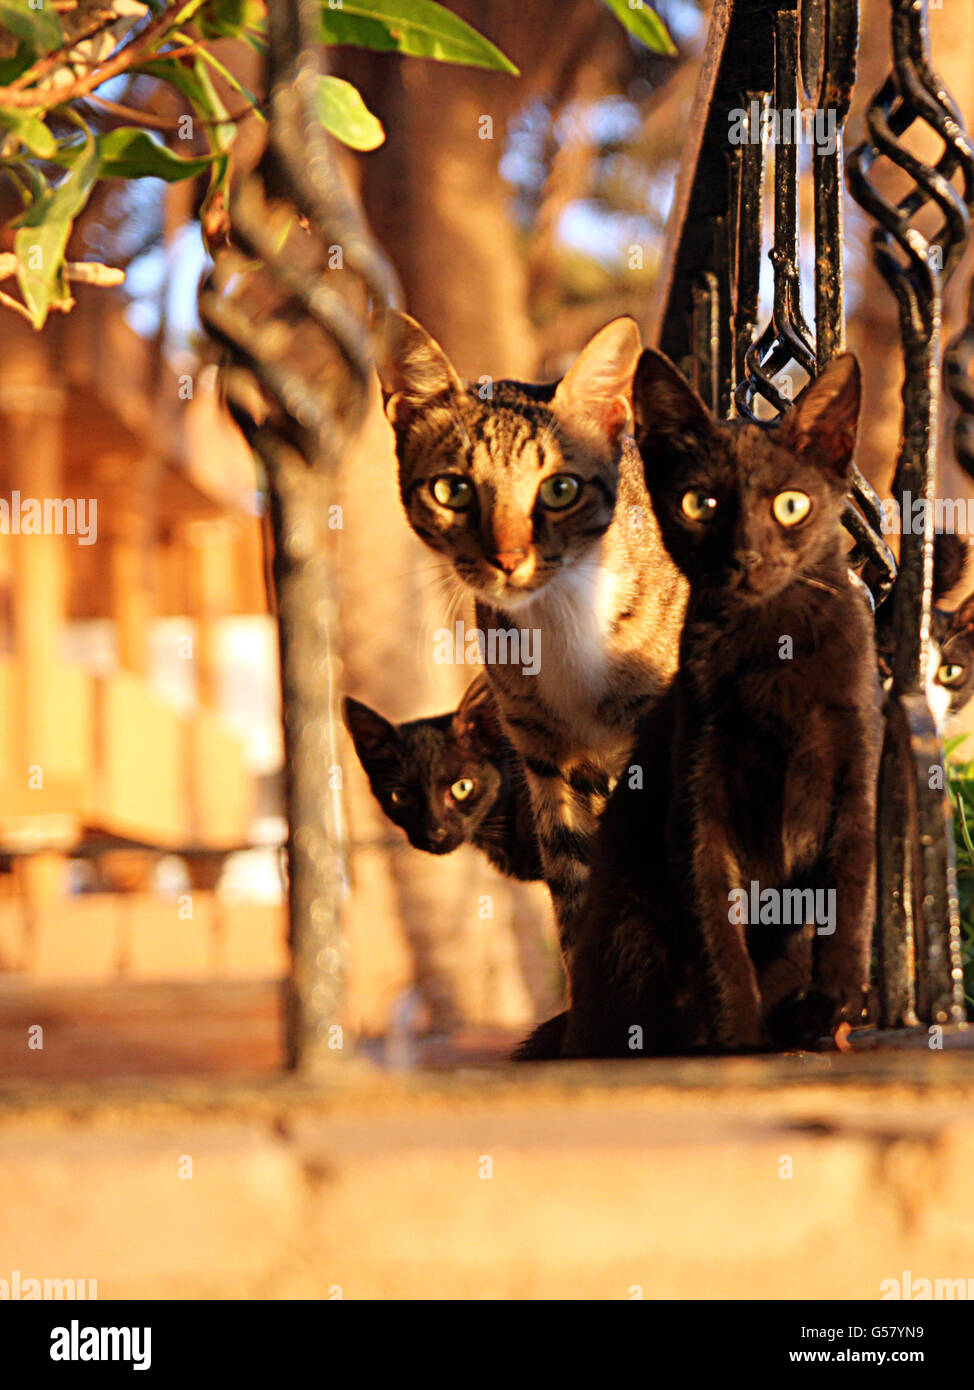 Family of cats sitting on fence and looking at camera - Stock Image